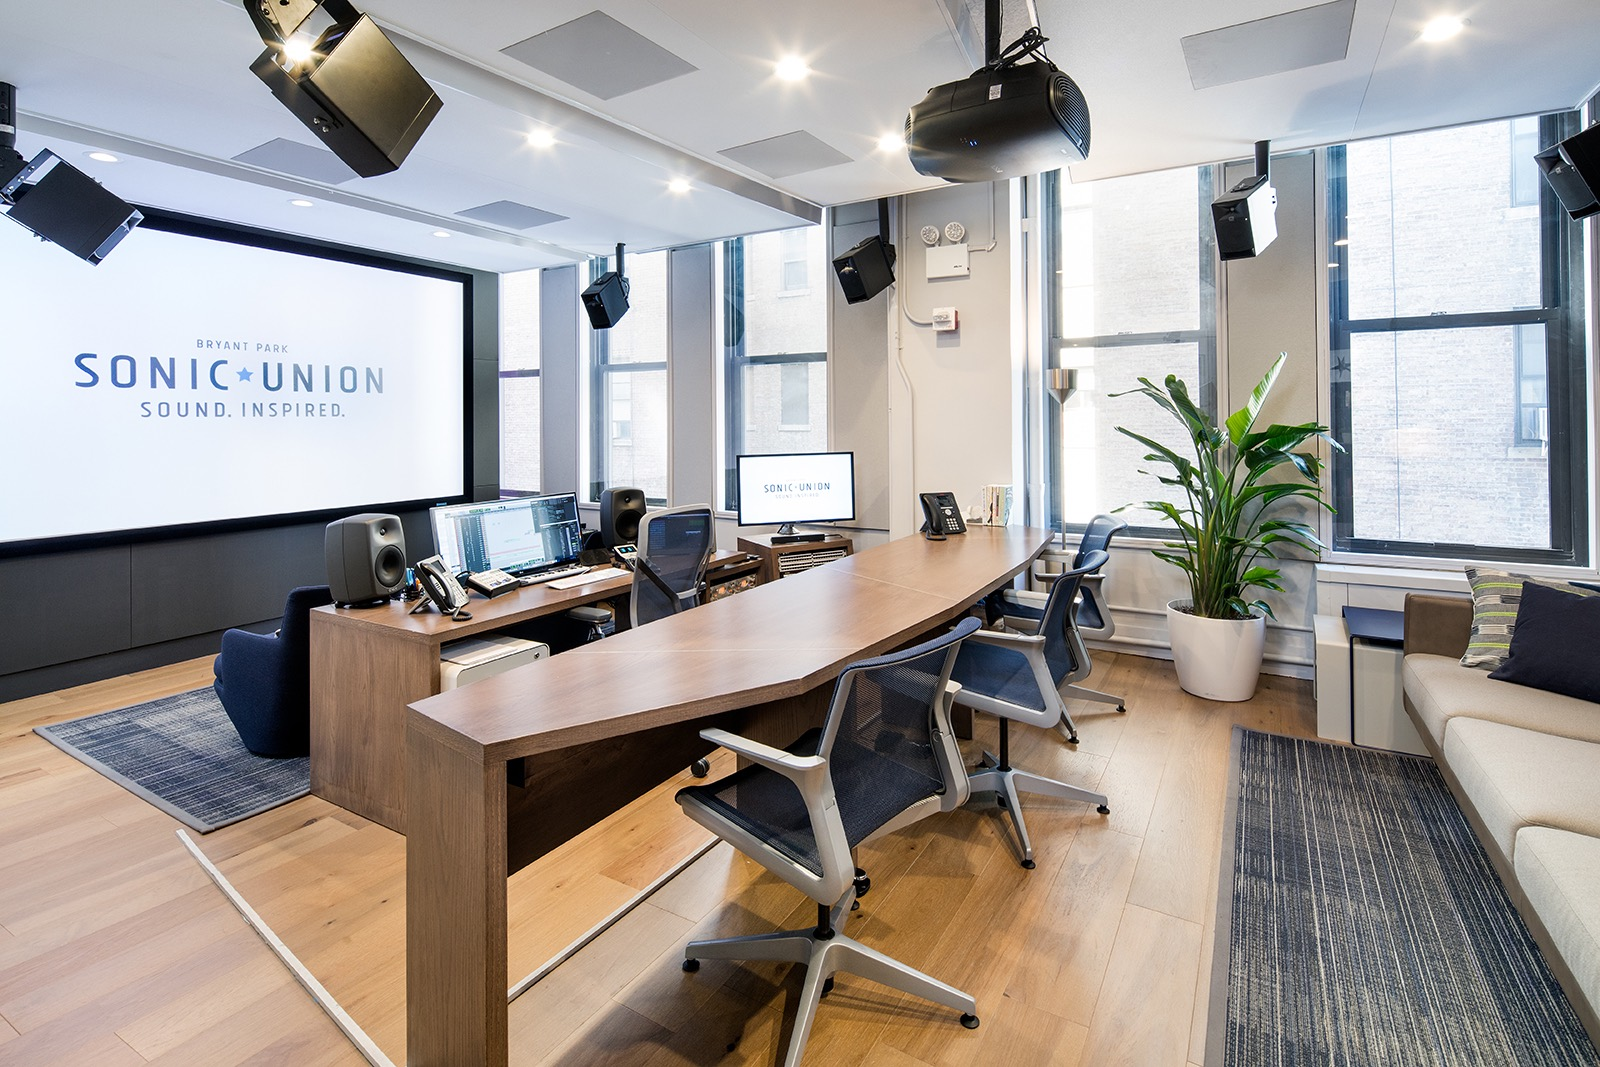 sonic-union-nyc-office-8